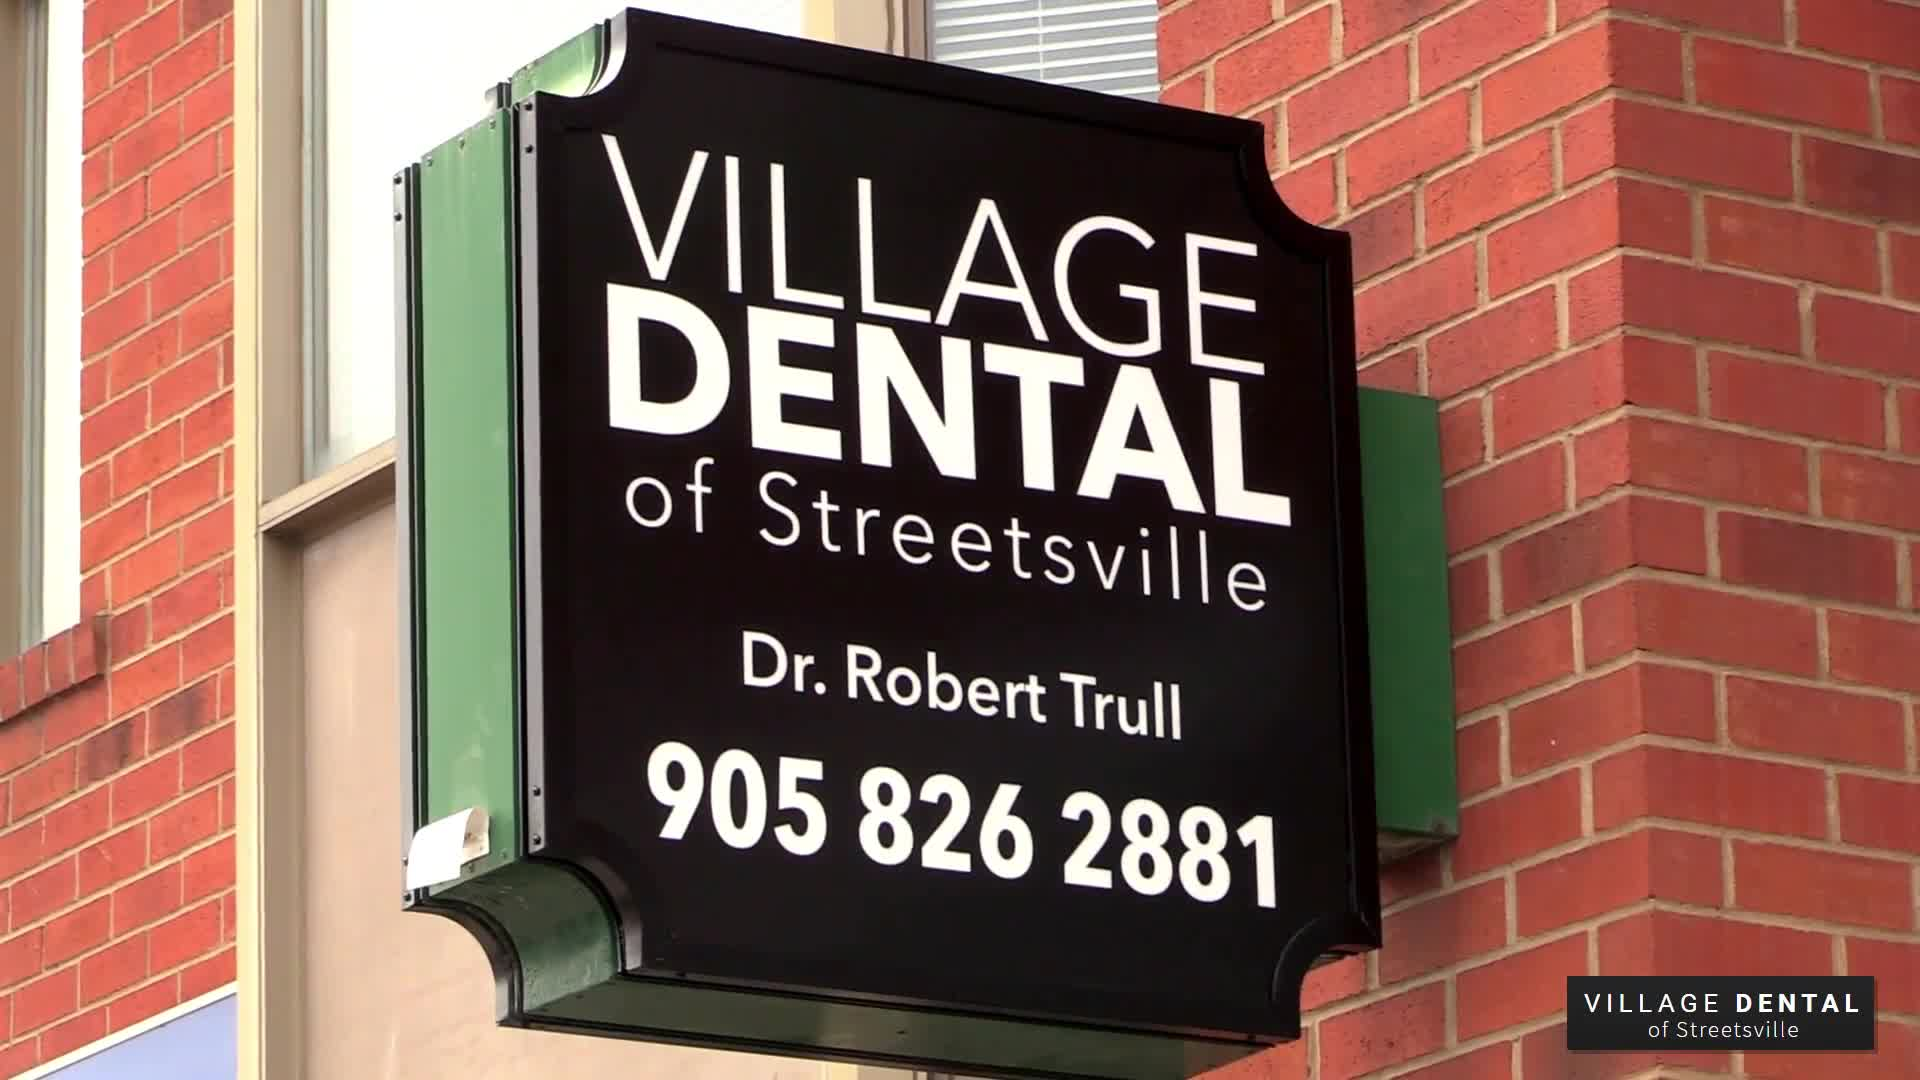 Trull Robert J Dr - Dentists - 905-826-2881